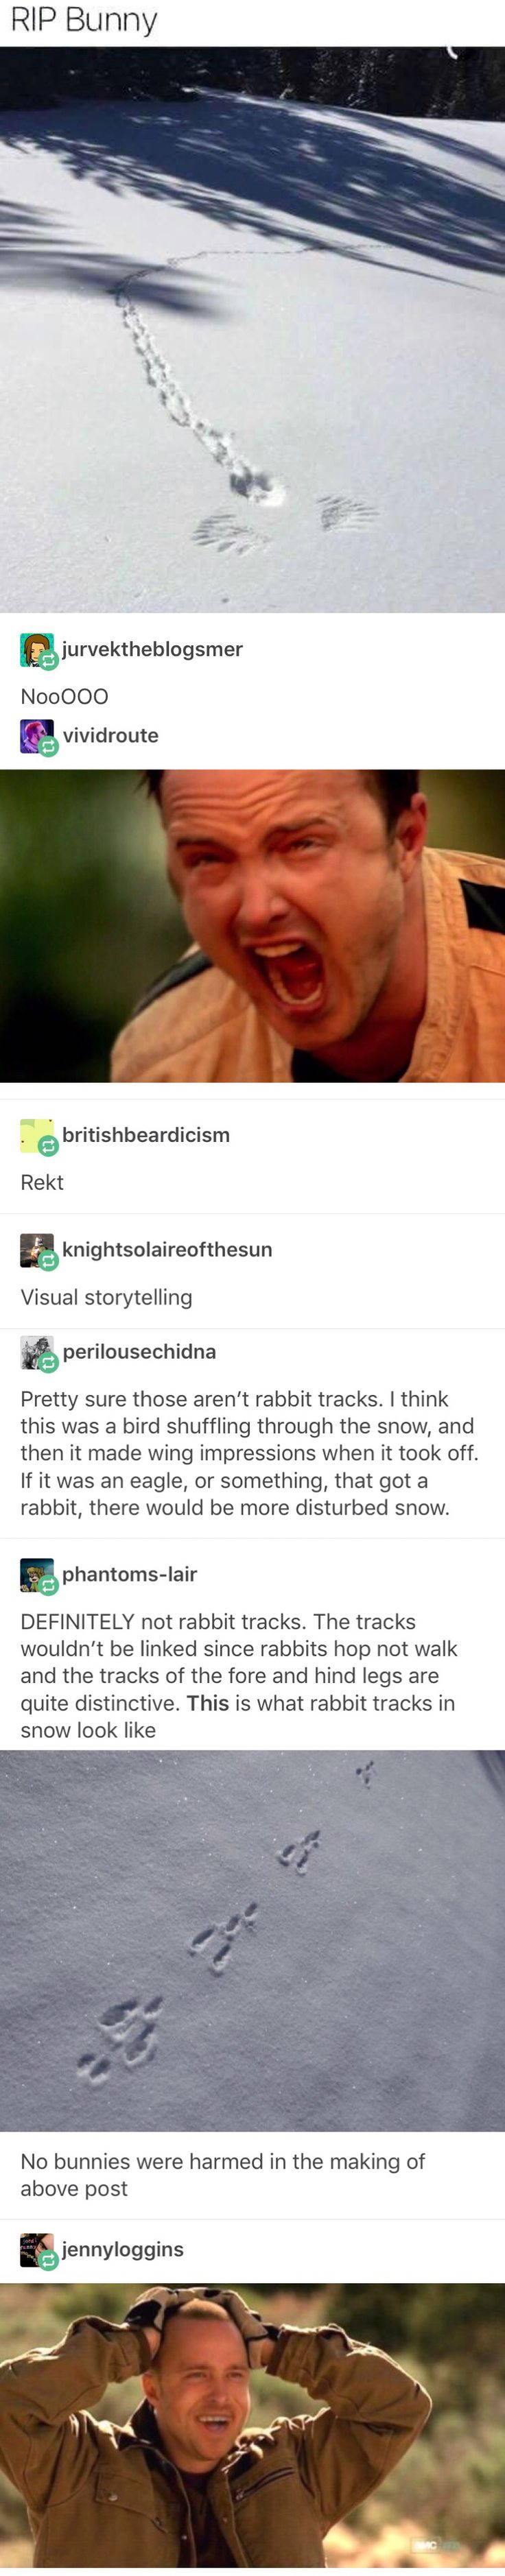 Yeah, I was shaking my head at the original picture. Those were definitely bird tracks. Probably looking for food in the snow, then flew off to keep searching.